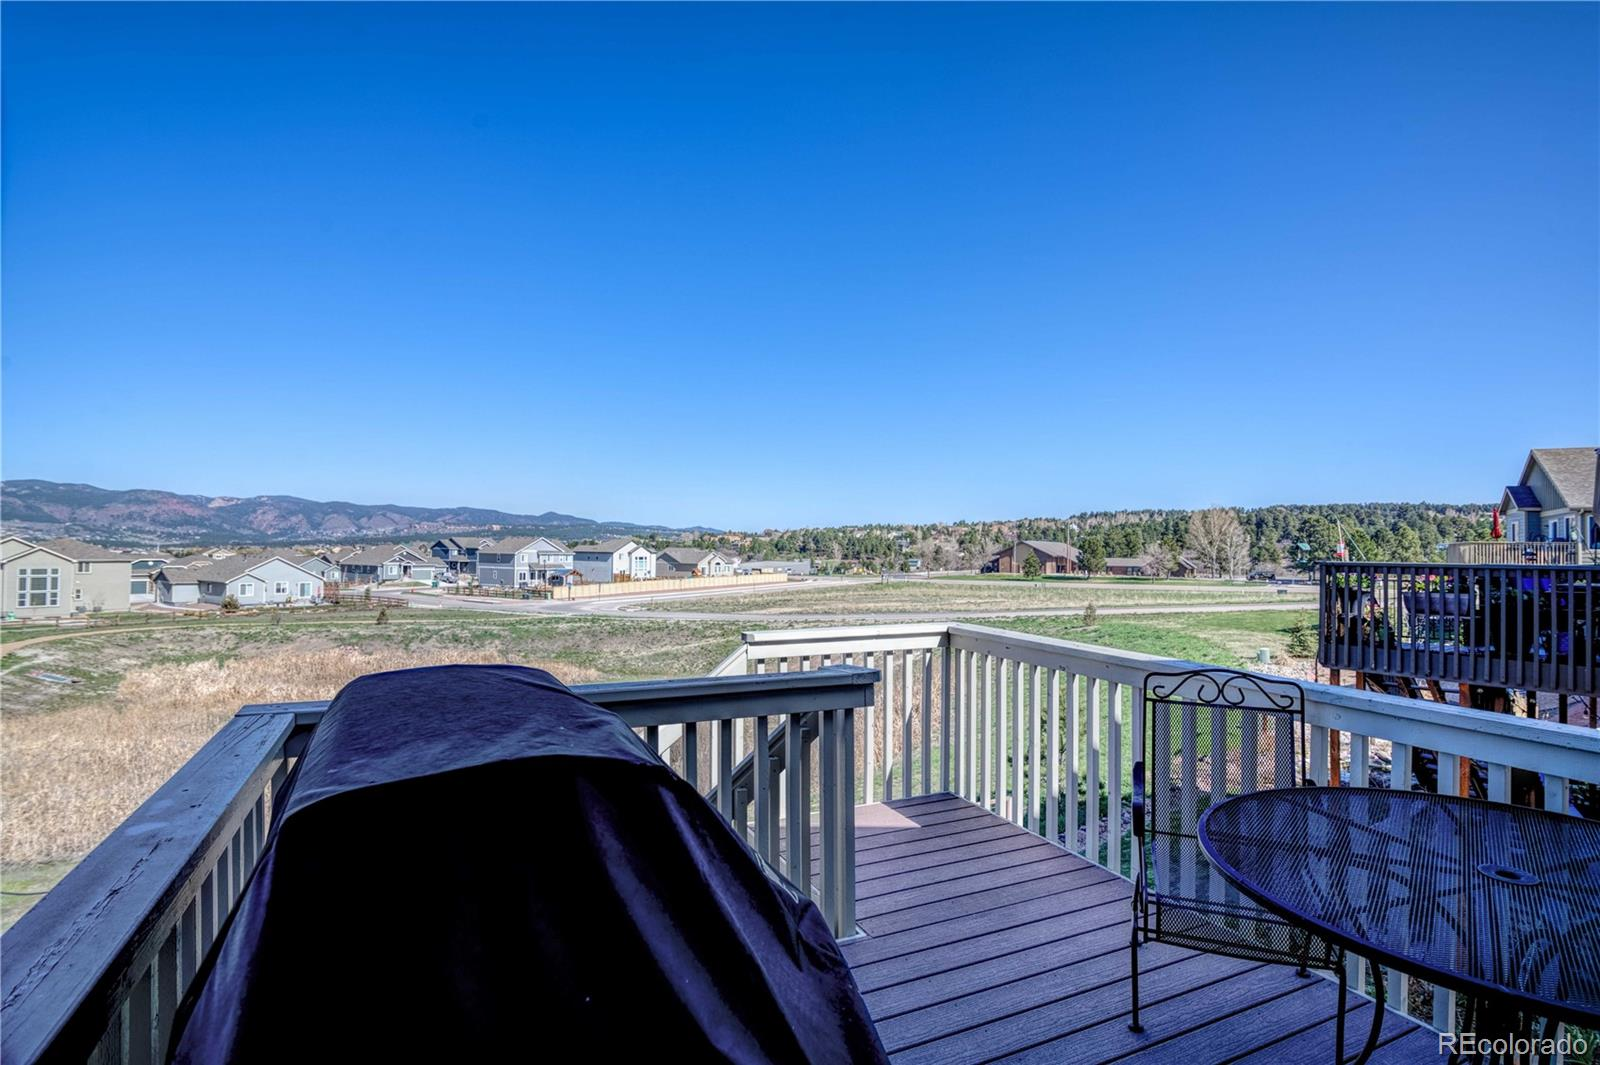 MLS# 5849980 - 14 - 17856 17856 Way, Monument, CO 80132